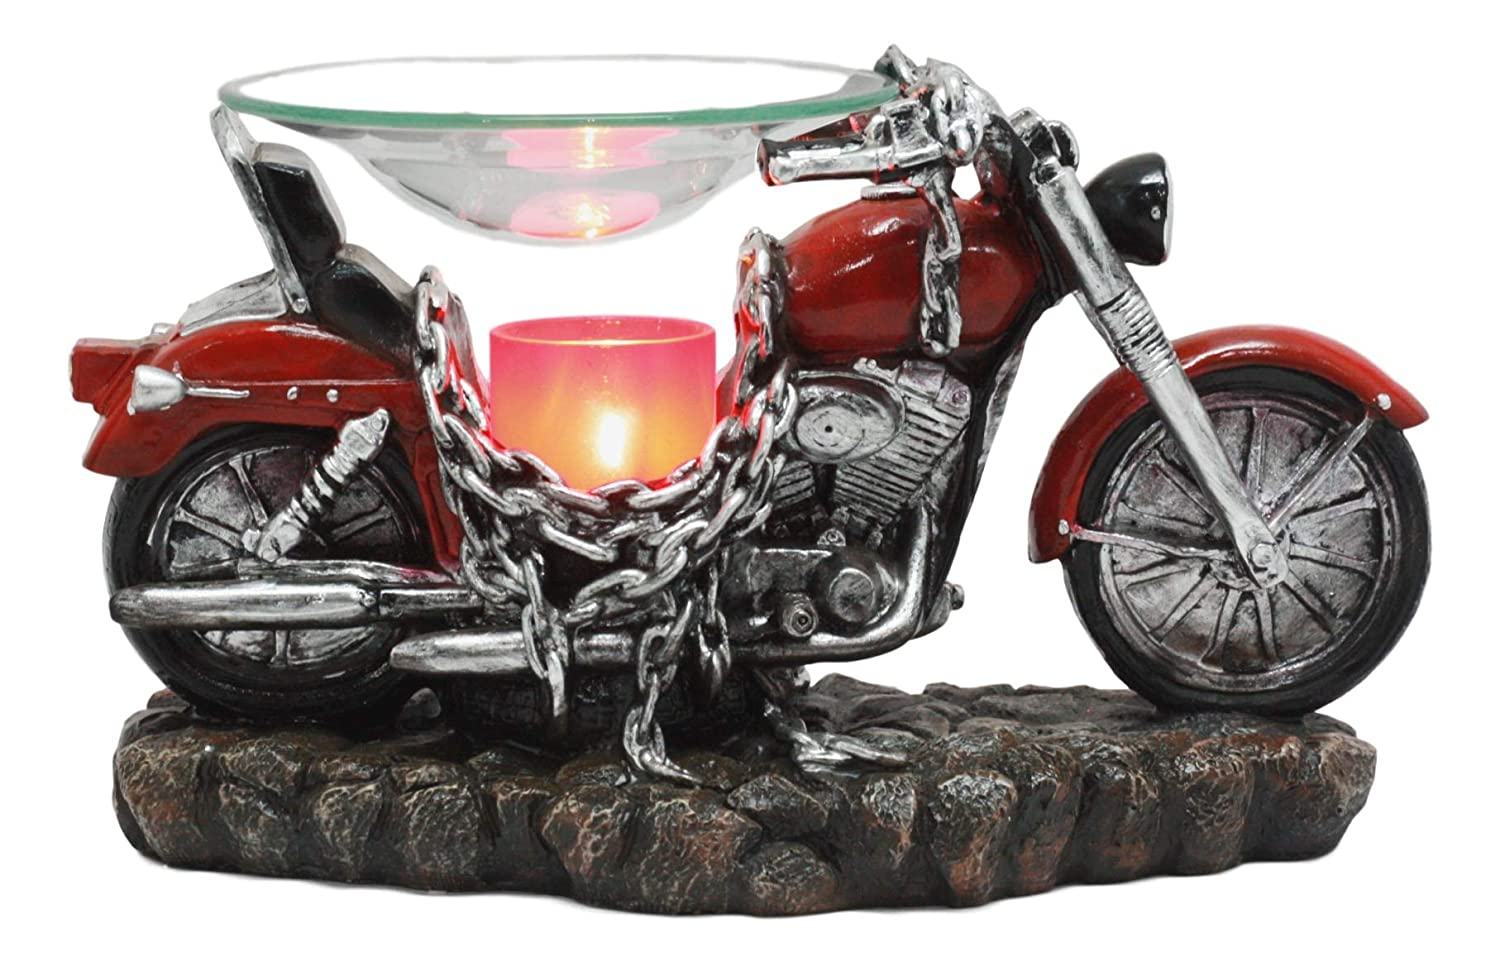 "Ebros Red Vintage Motorcycle Classic Chopper Bike Electric Oil Burner Or Tart Warmer Decor Statue 9.5"" Long Home Fragrance Aroma Accessory Decor Figurine"